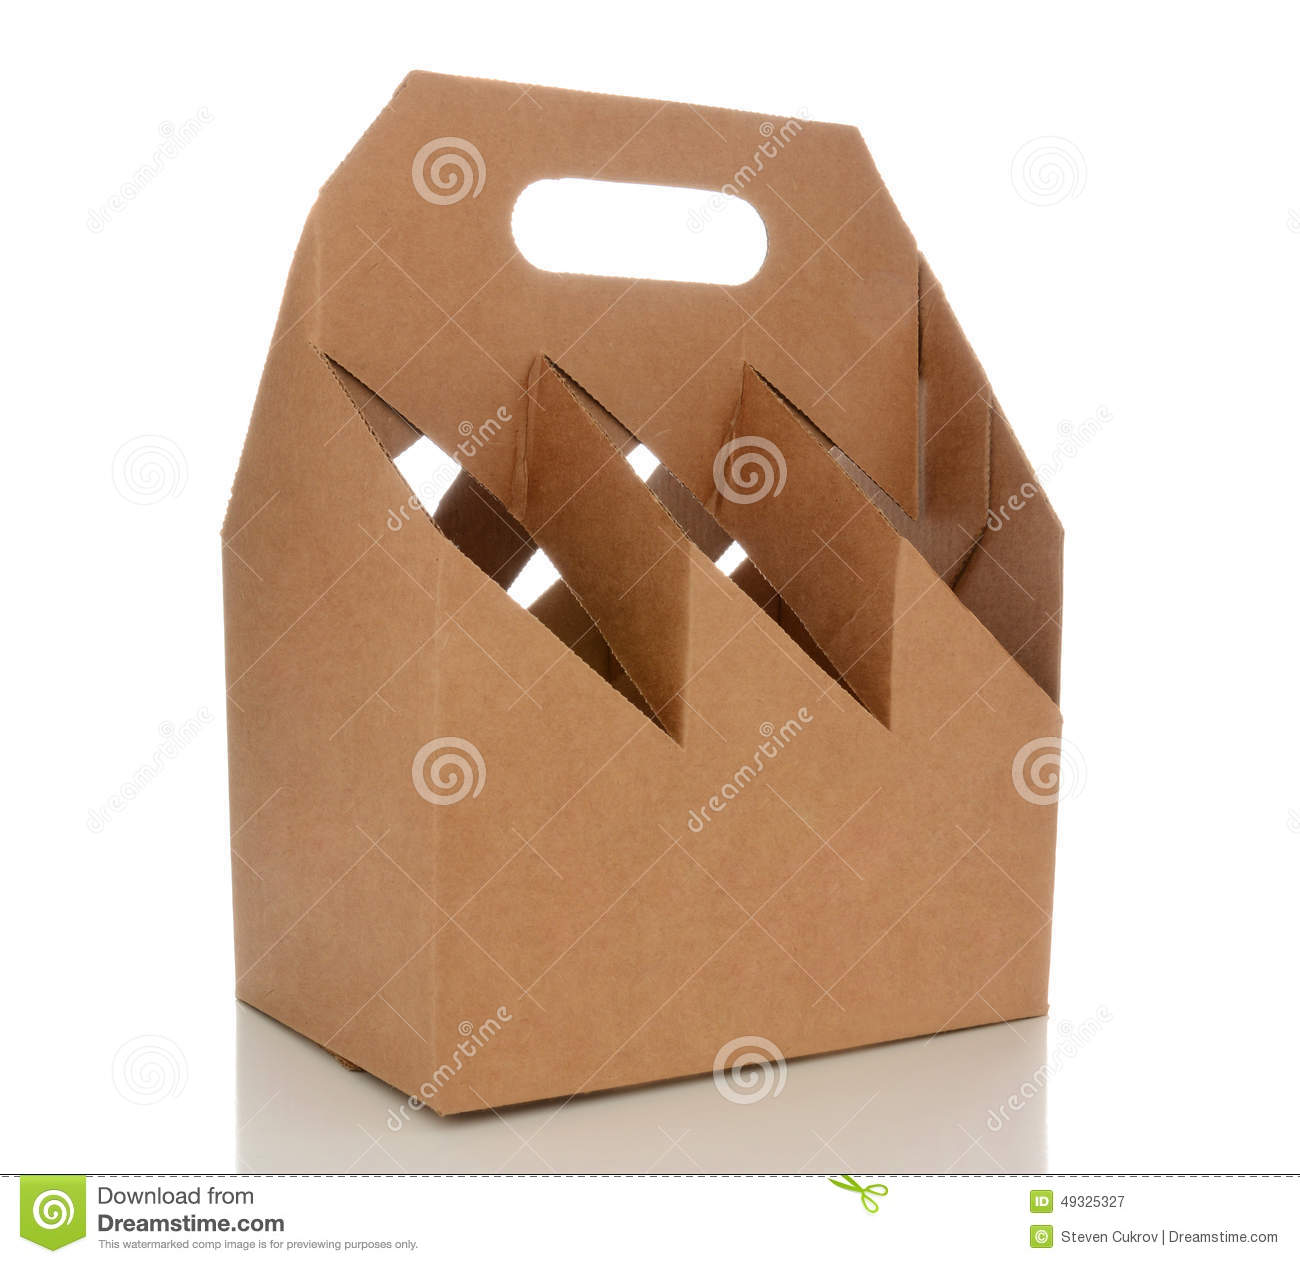 Empty six pack carrier stock image image of reflection 49325327 download empty six pack carrier stock image image of reflection 49325327 maxwellsz